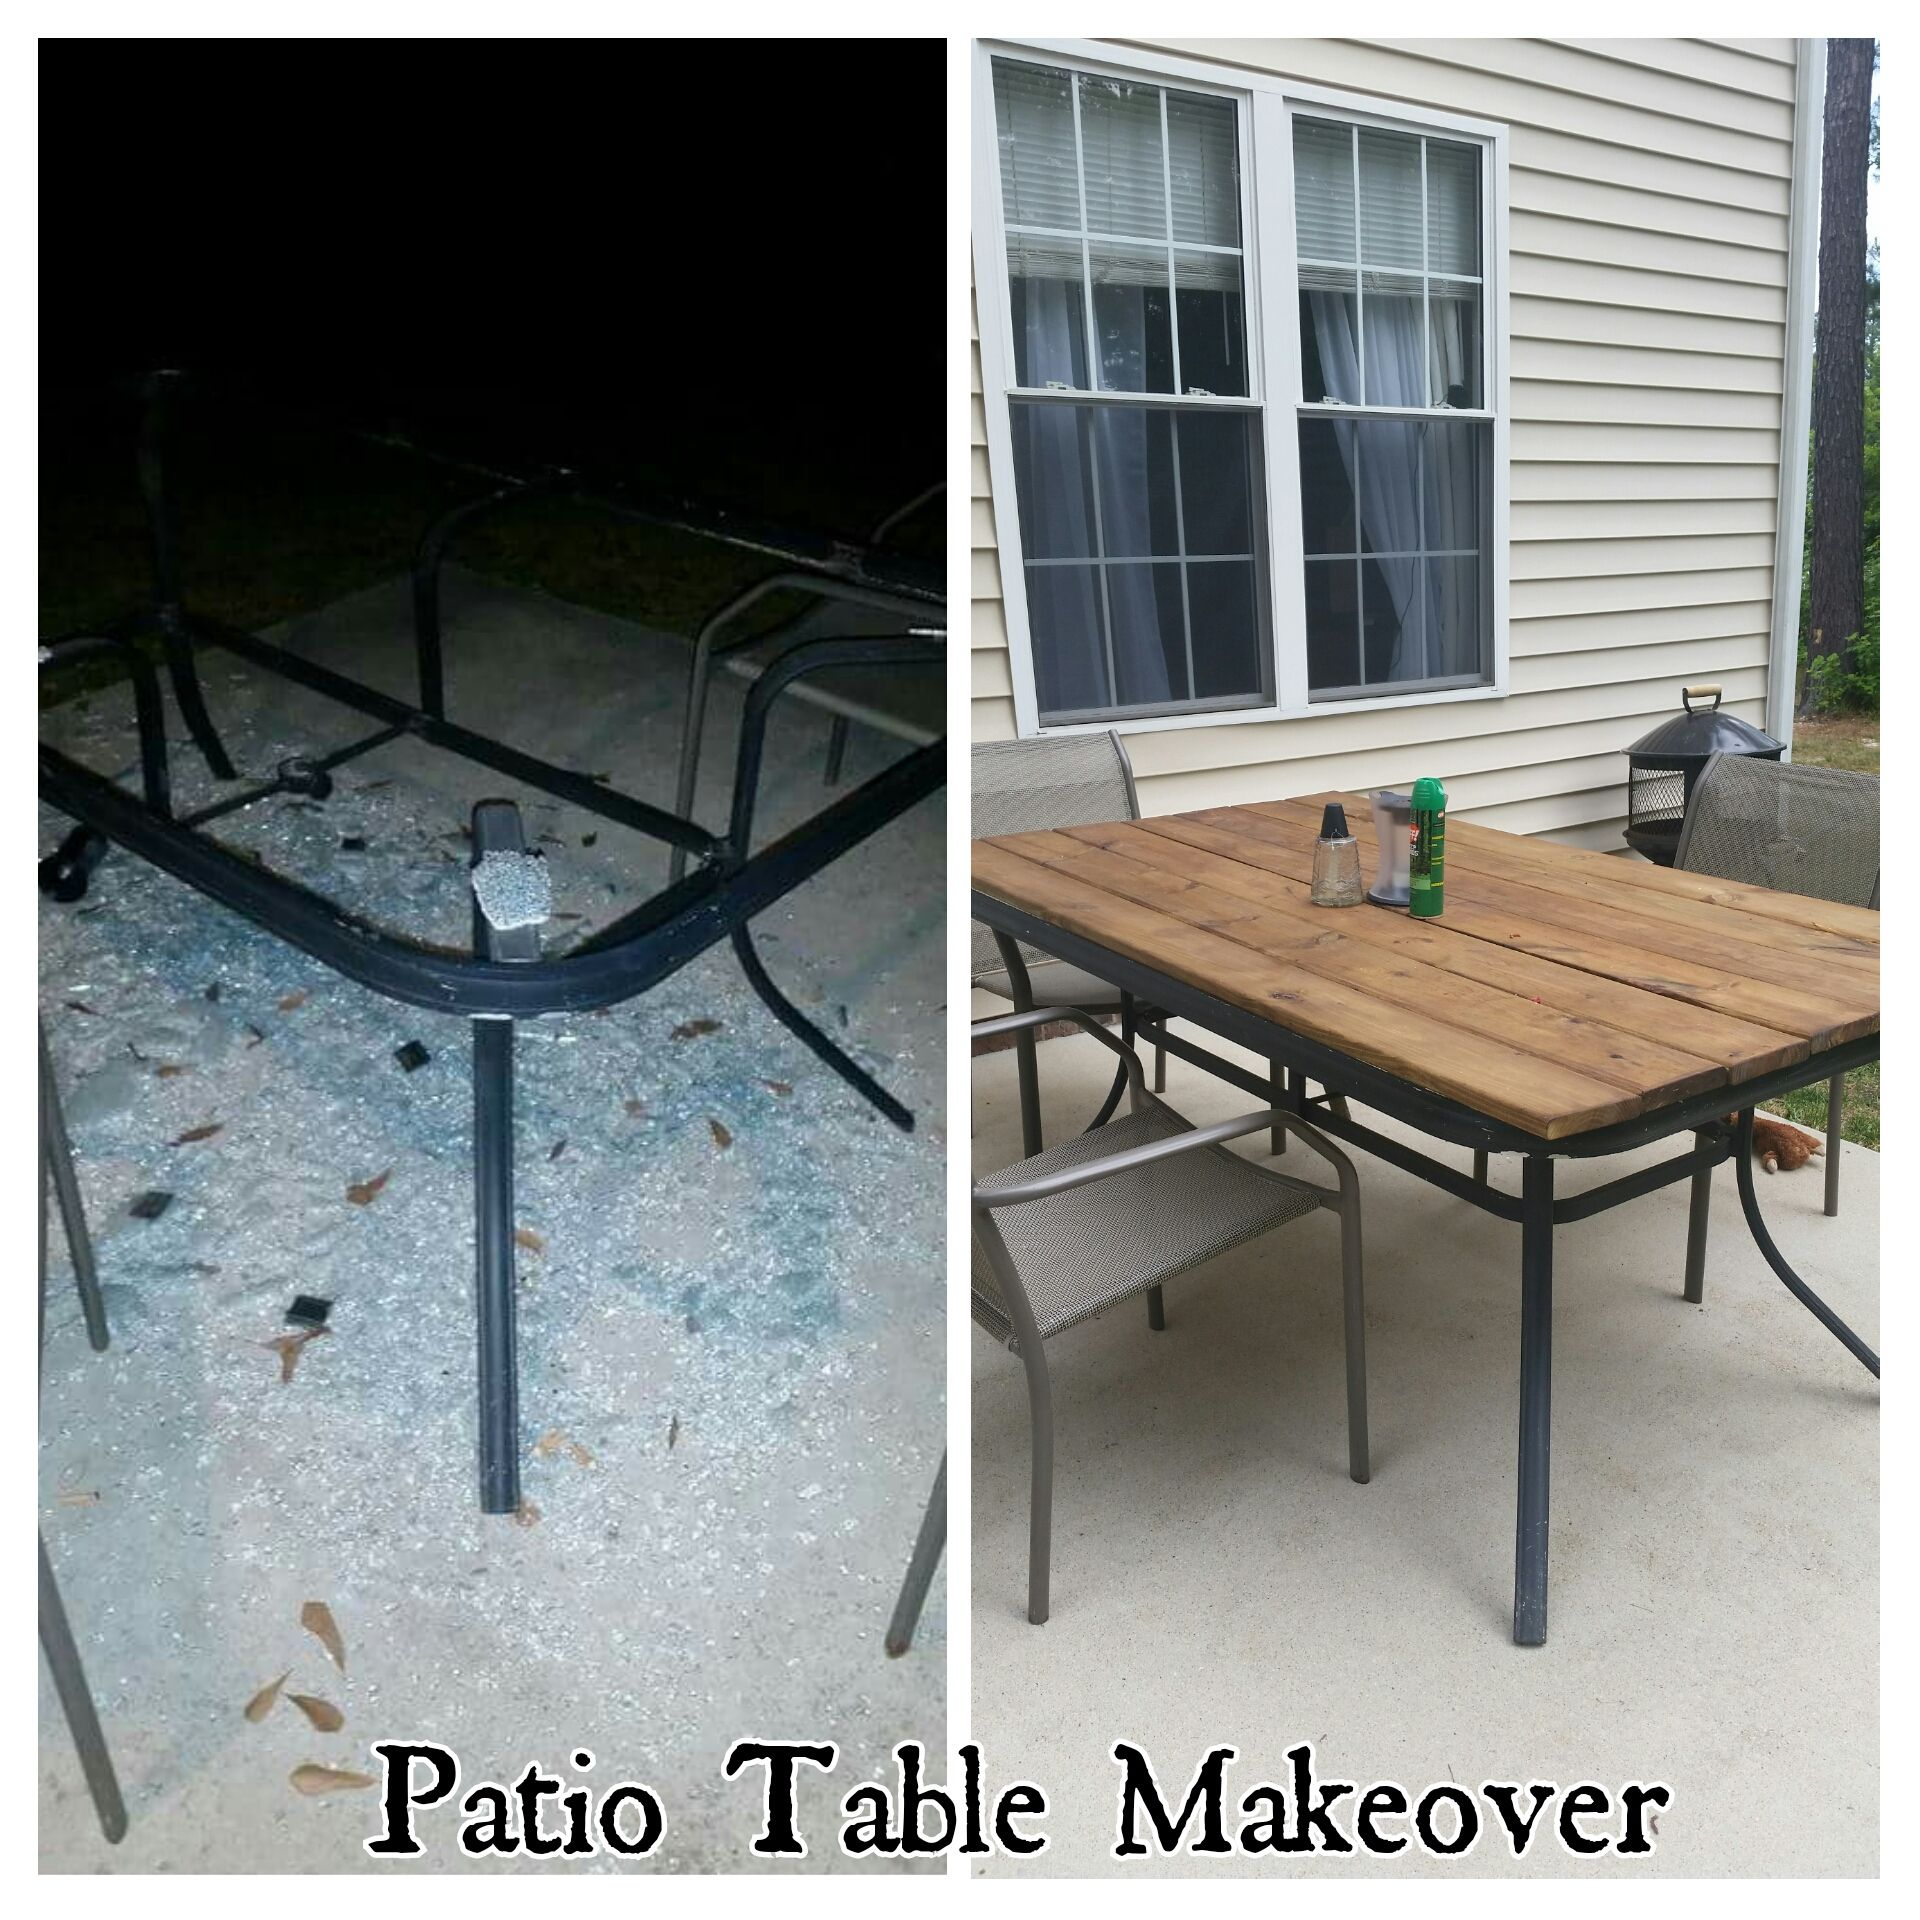 Patio Table Makeover Shattered Glass Redo Patio Furniture Makeover Diy Patio Table Patio Table Redo